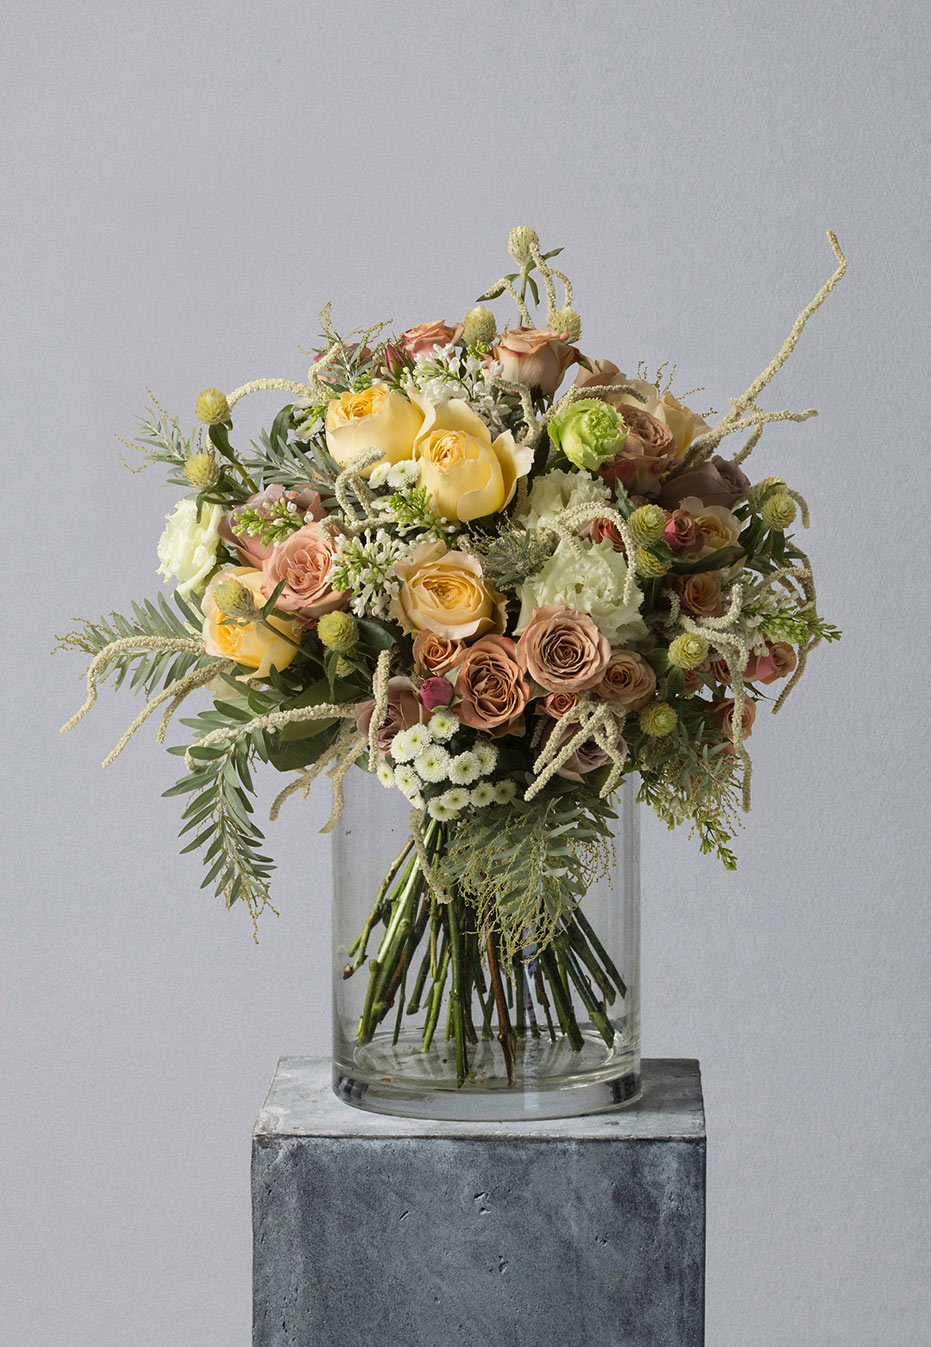 flower bouquet of garden roses by flannel flowers